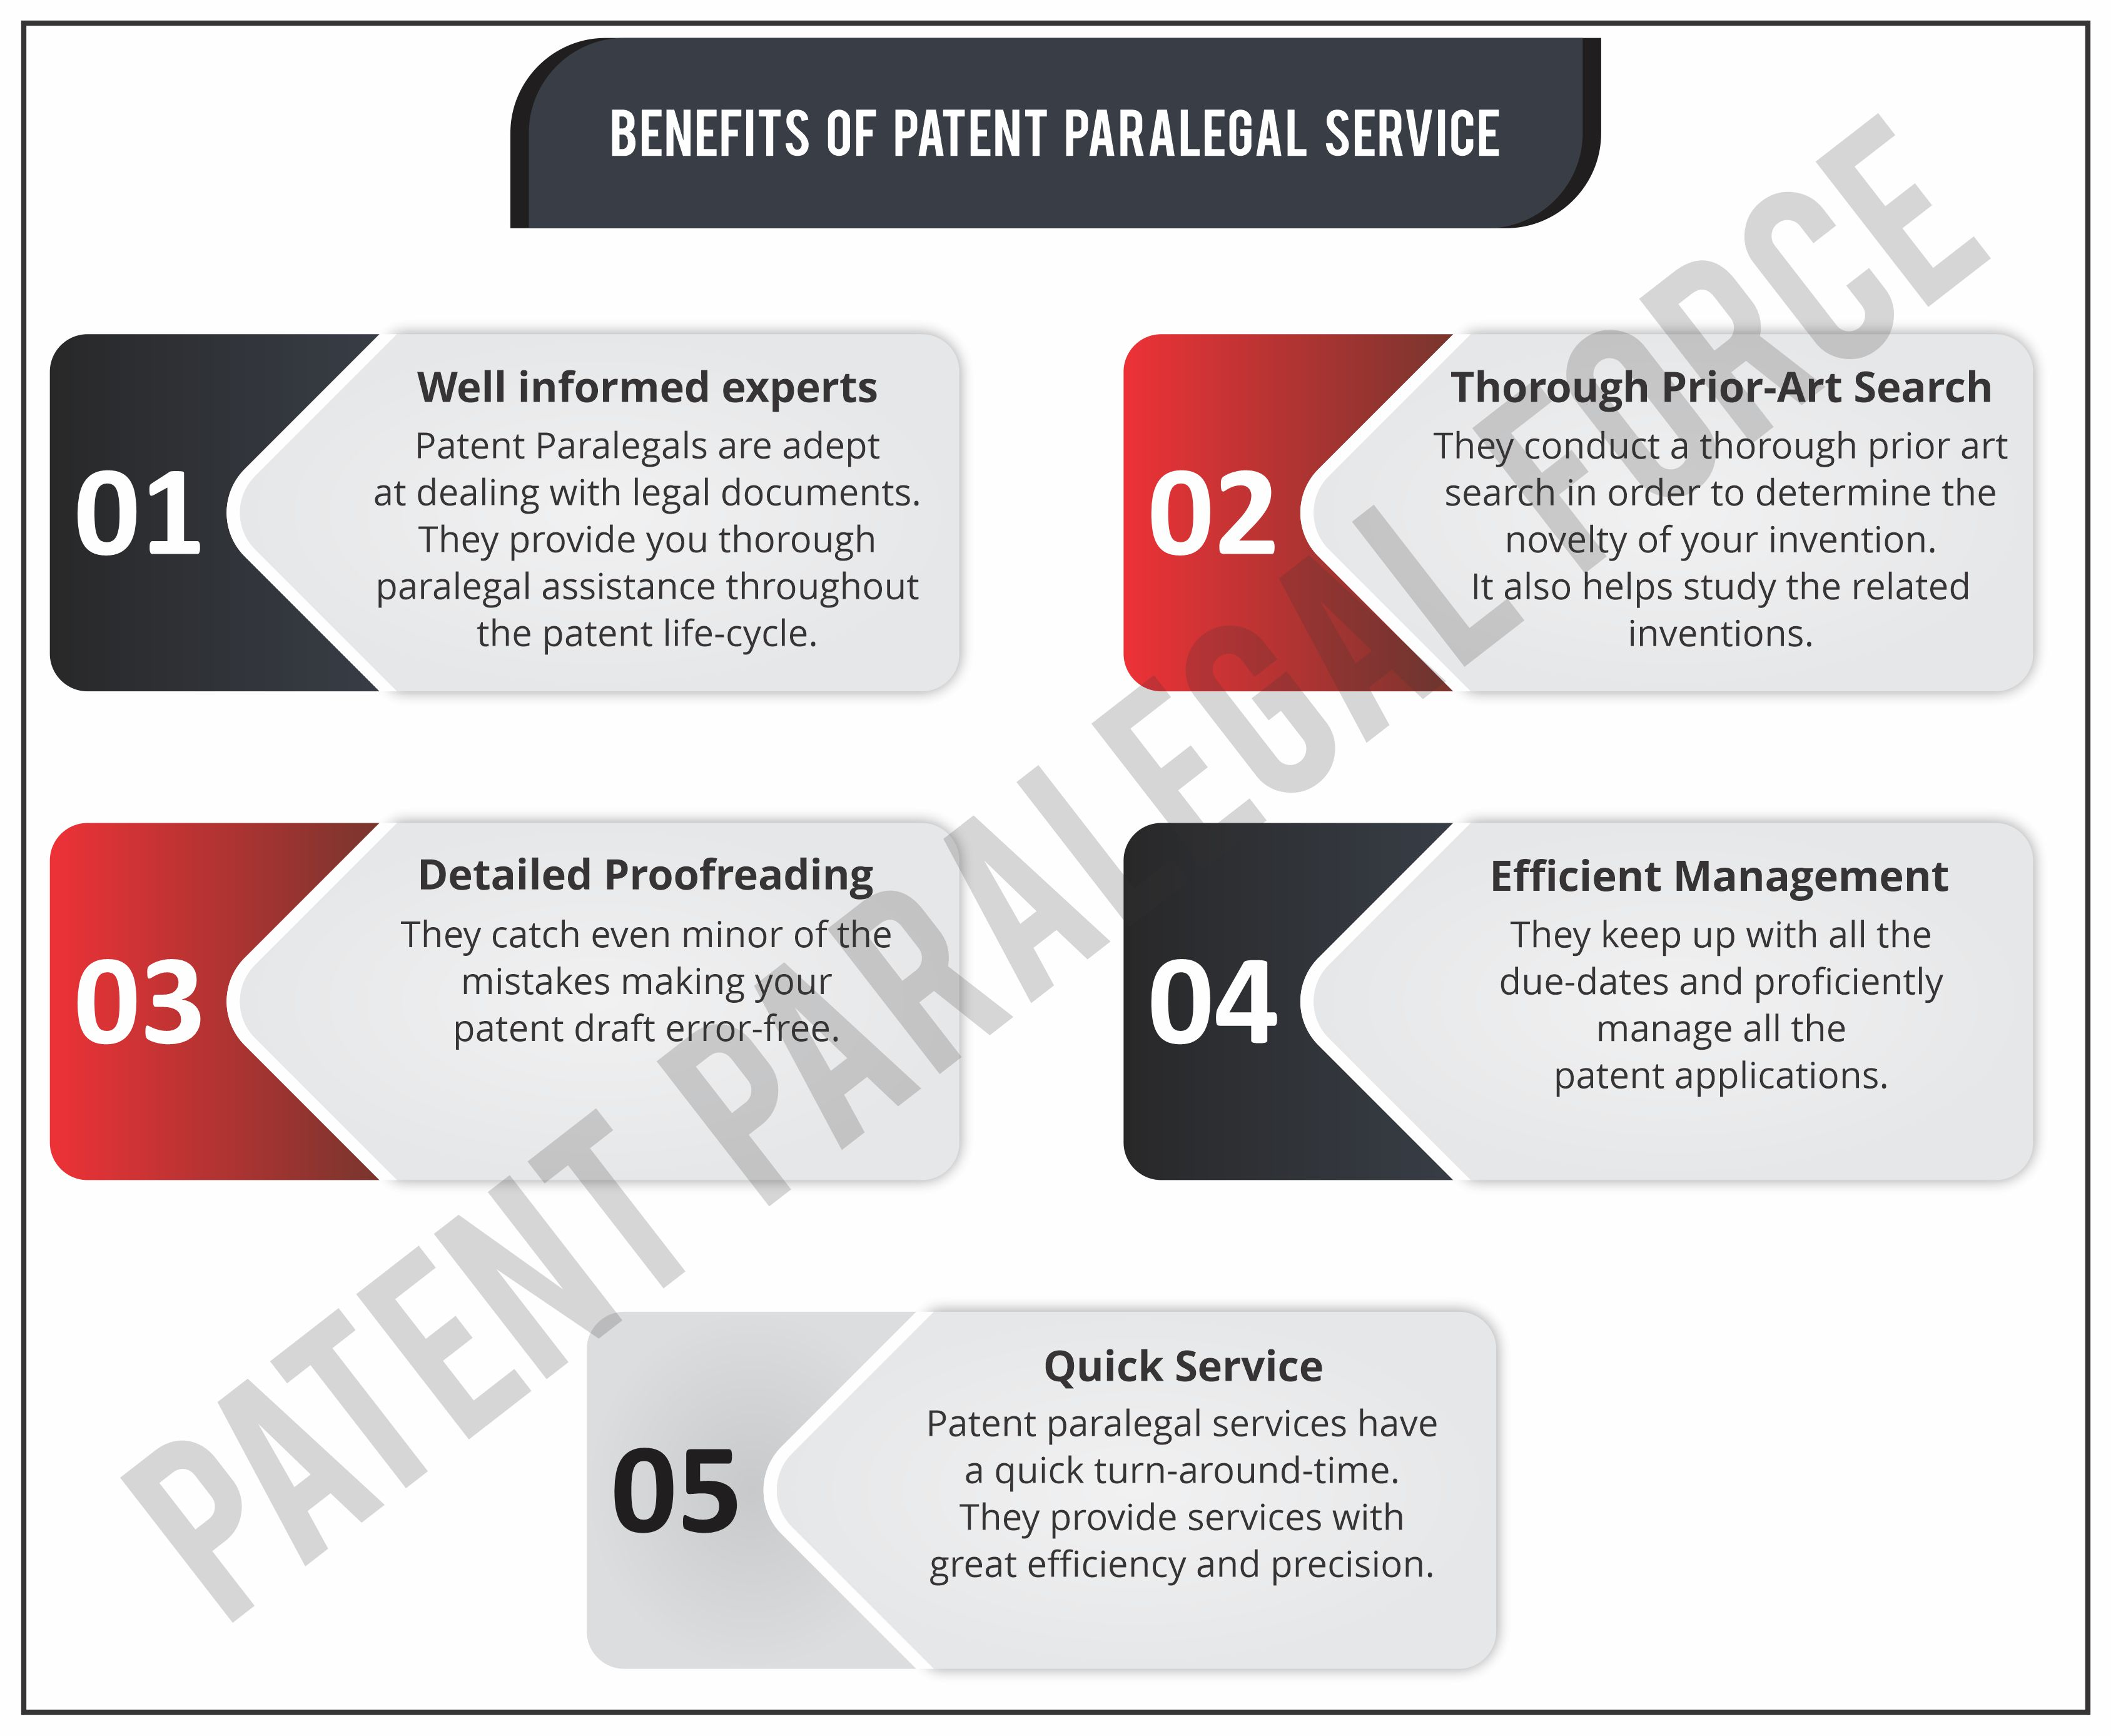 Benefits of Patent Paralegal Service